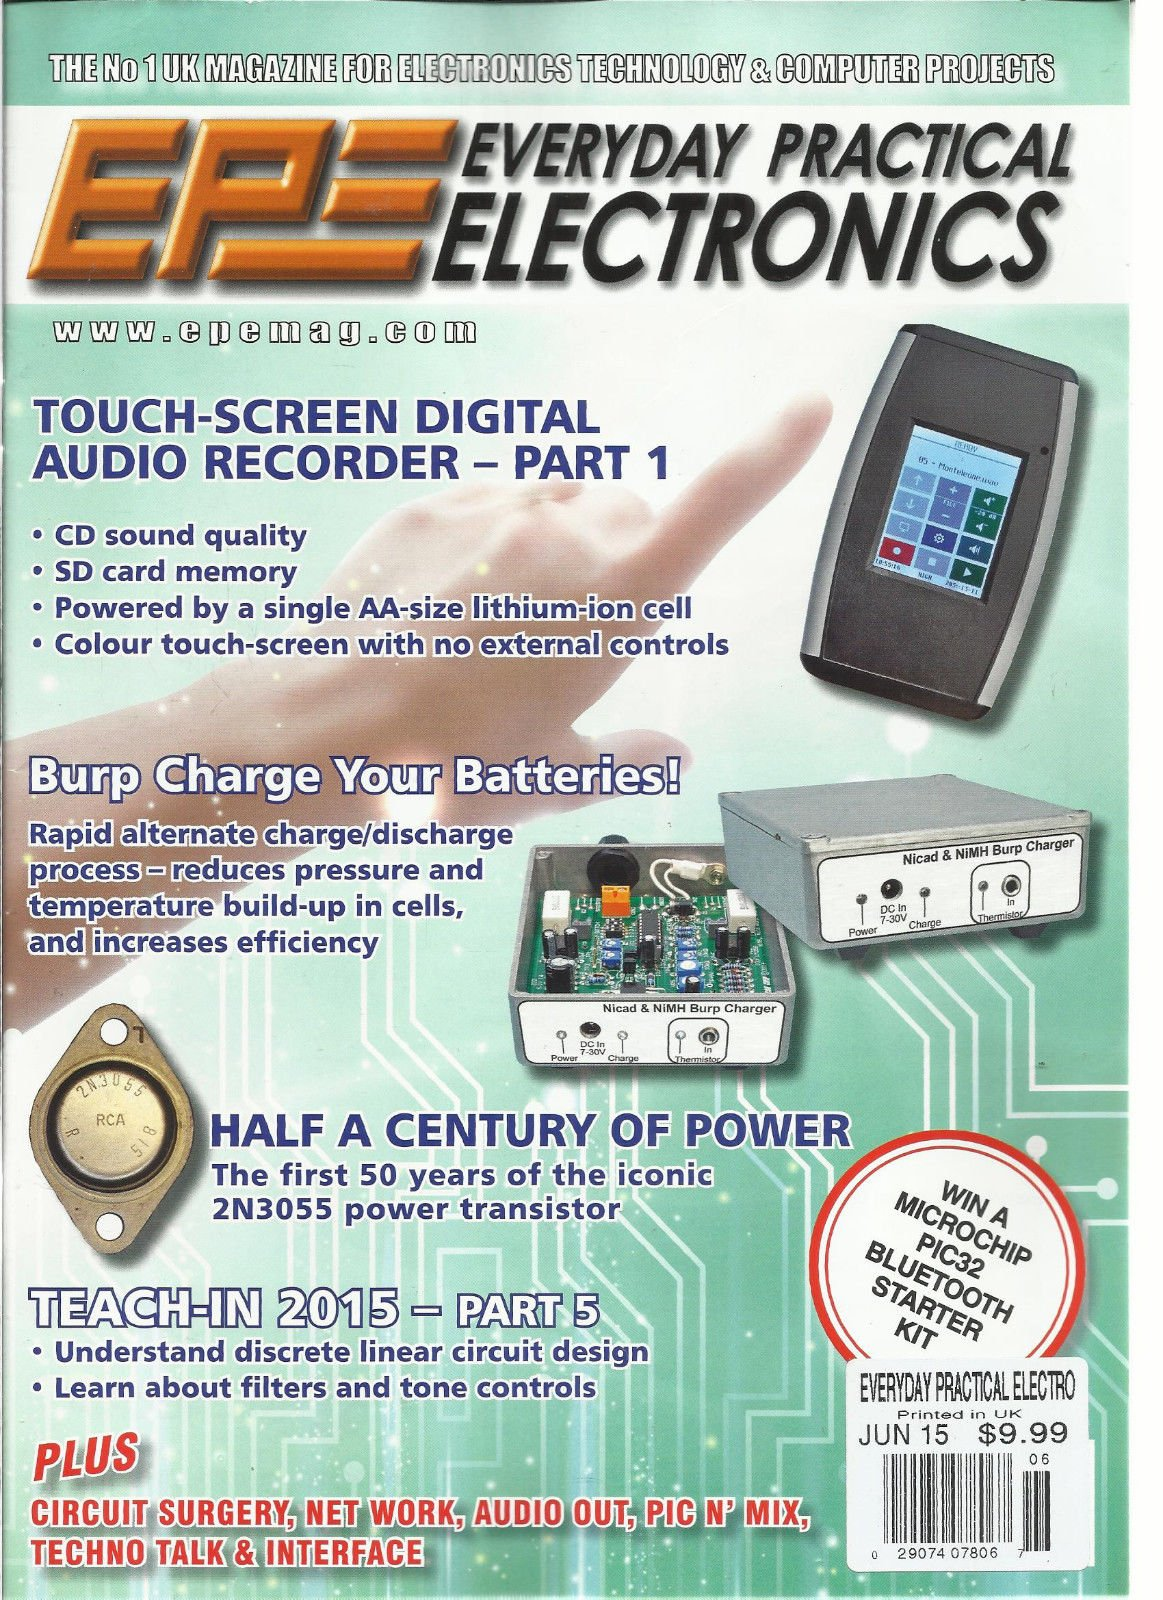 EPE EVERYDAY PRACTICAL ELECTRONICS, JUNE, 2015 (BURO CHARGE YOUR BATTERIES